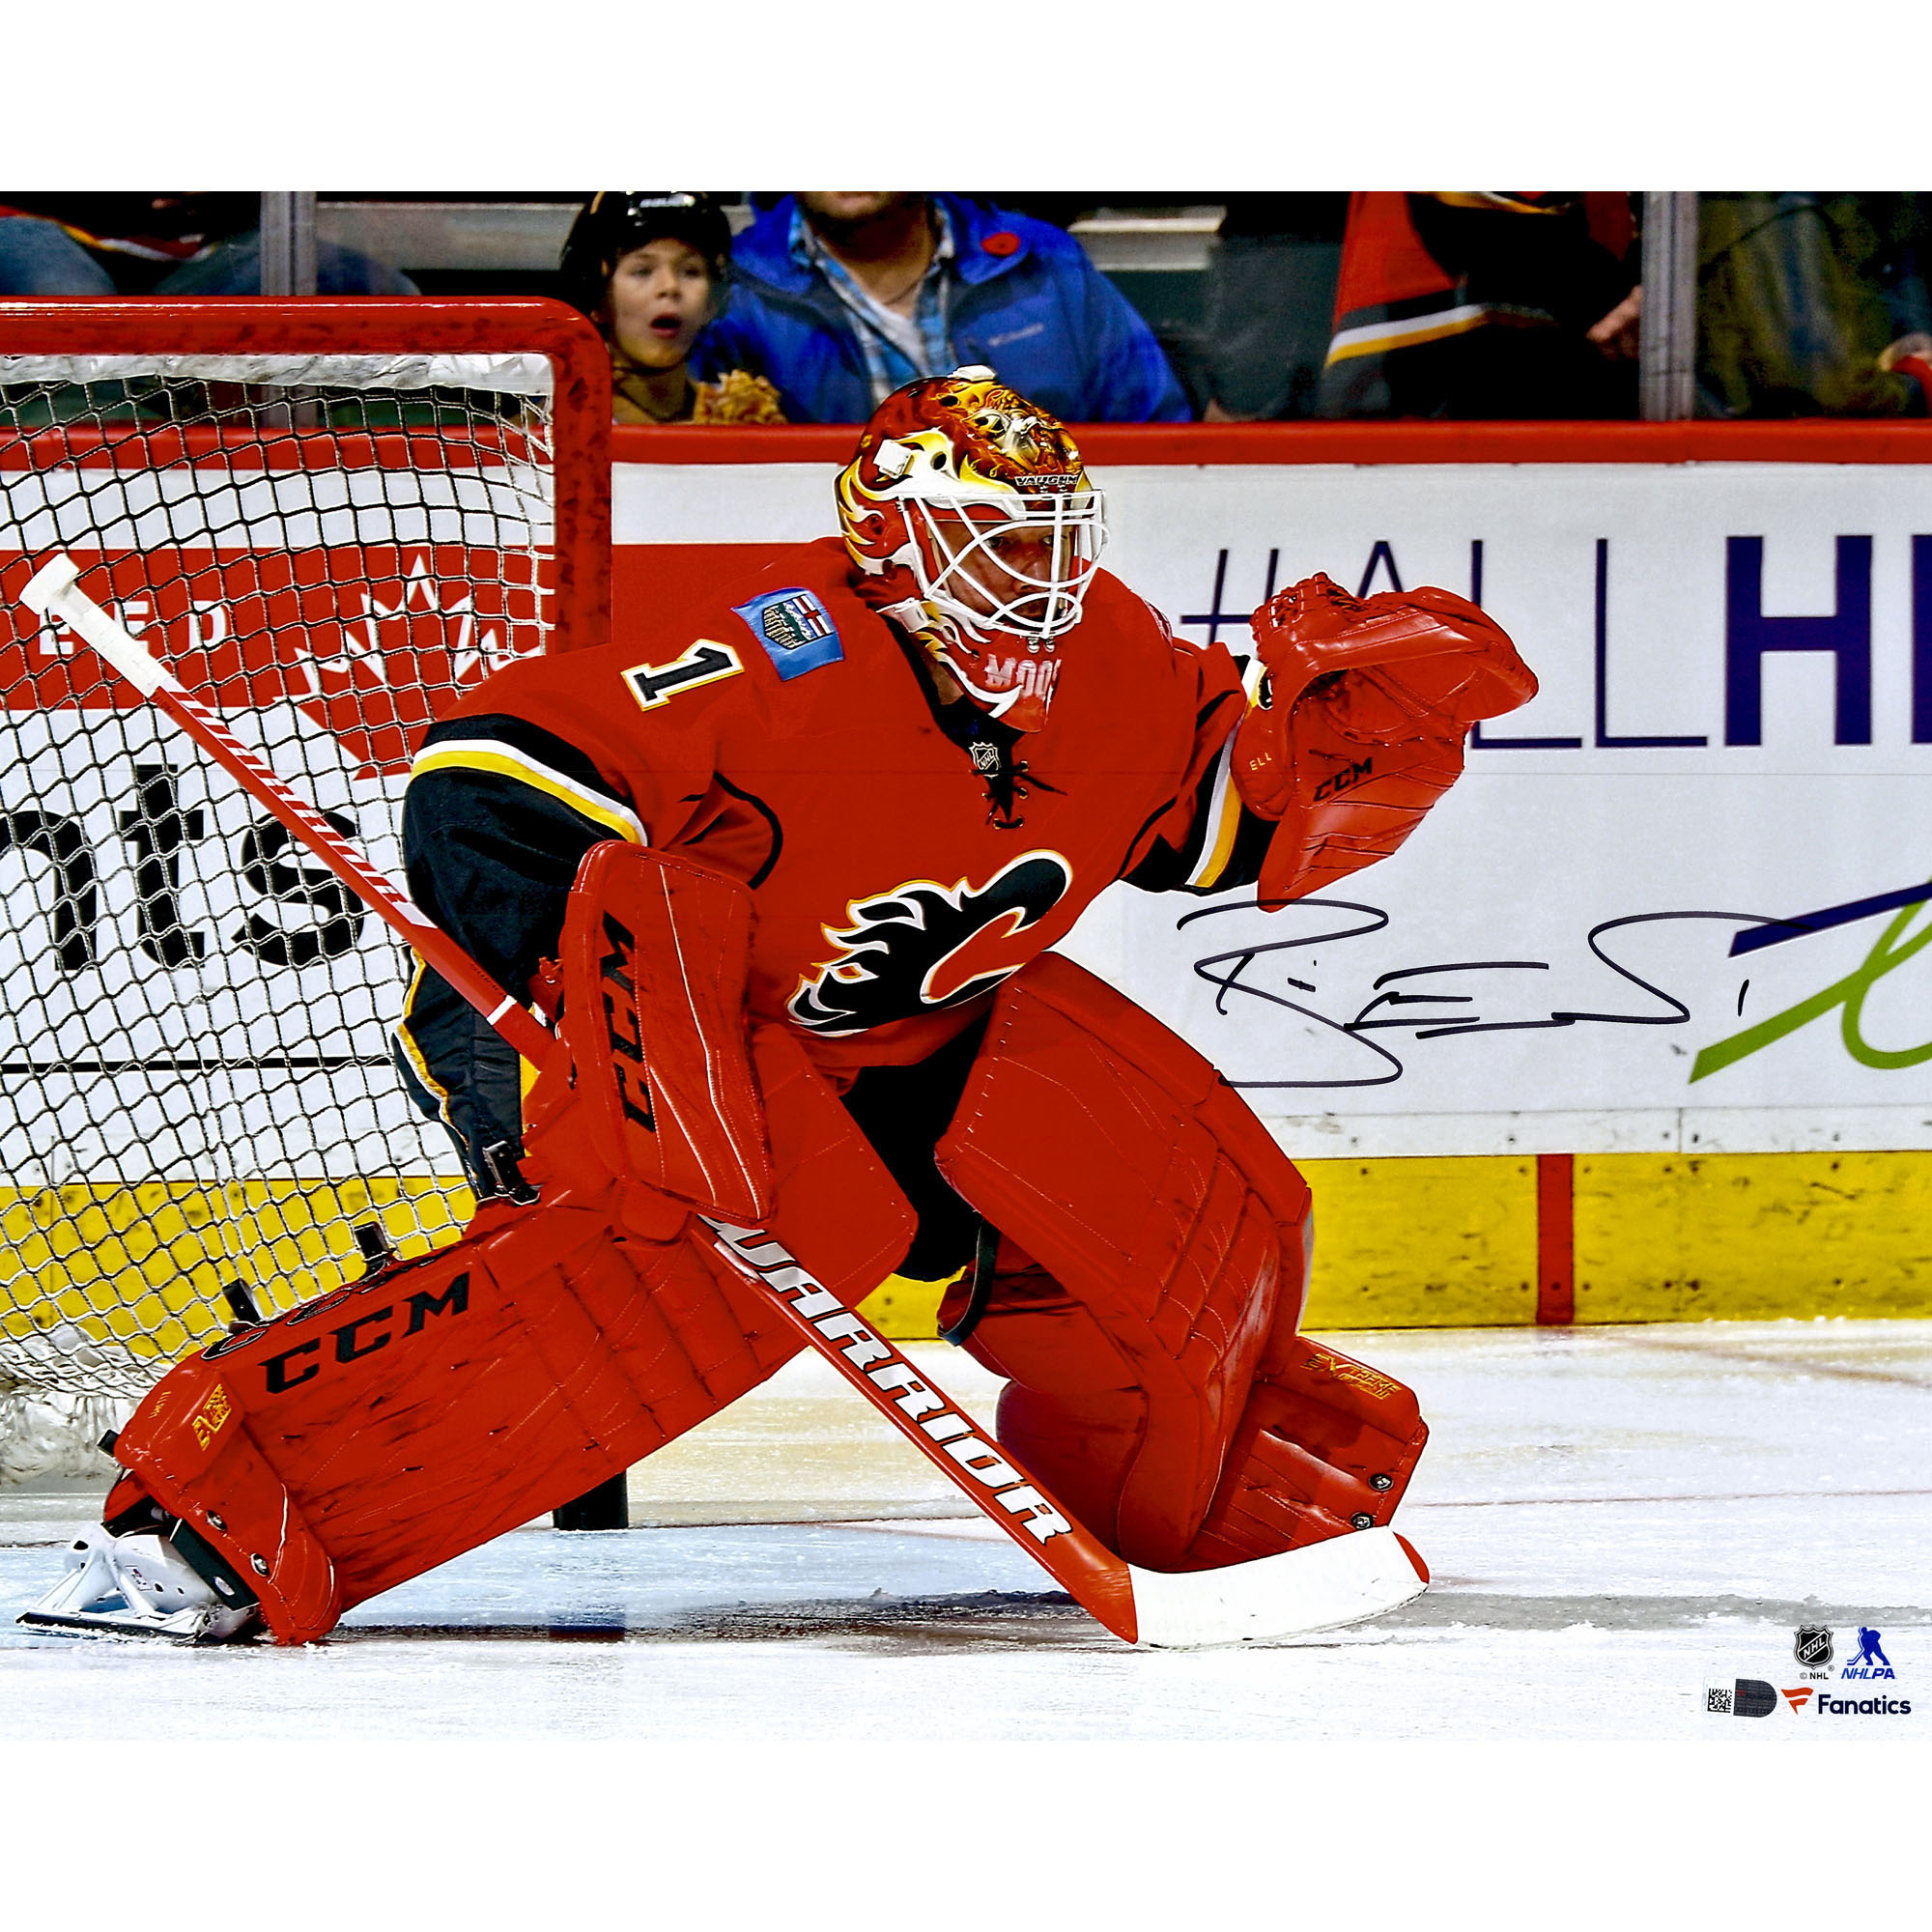 """Brian Elliott Calgary Flames Fanatics Authentic Autographed 16"""" x 20"""" Red Jersey Crouched In Net Photograph - No Size"""